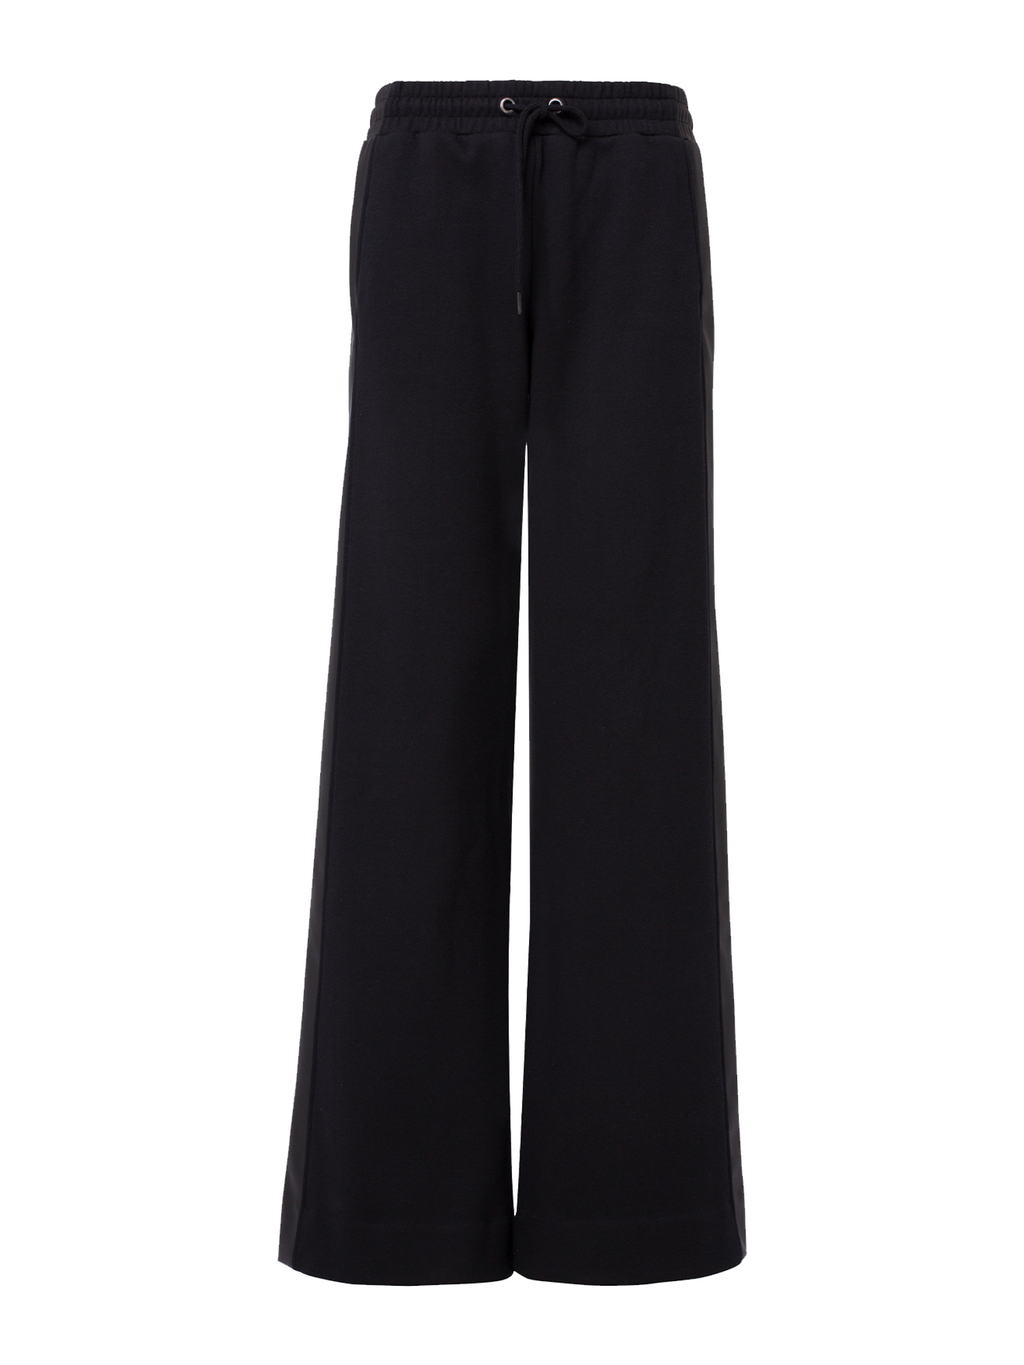 Dorothee Schumacher Casual Coolness Pants